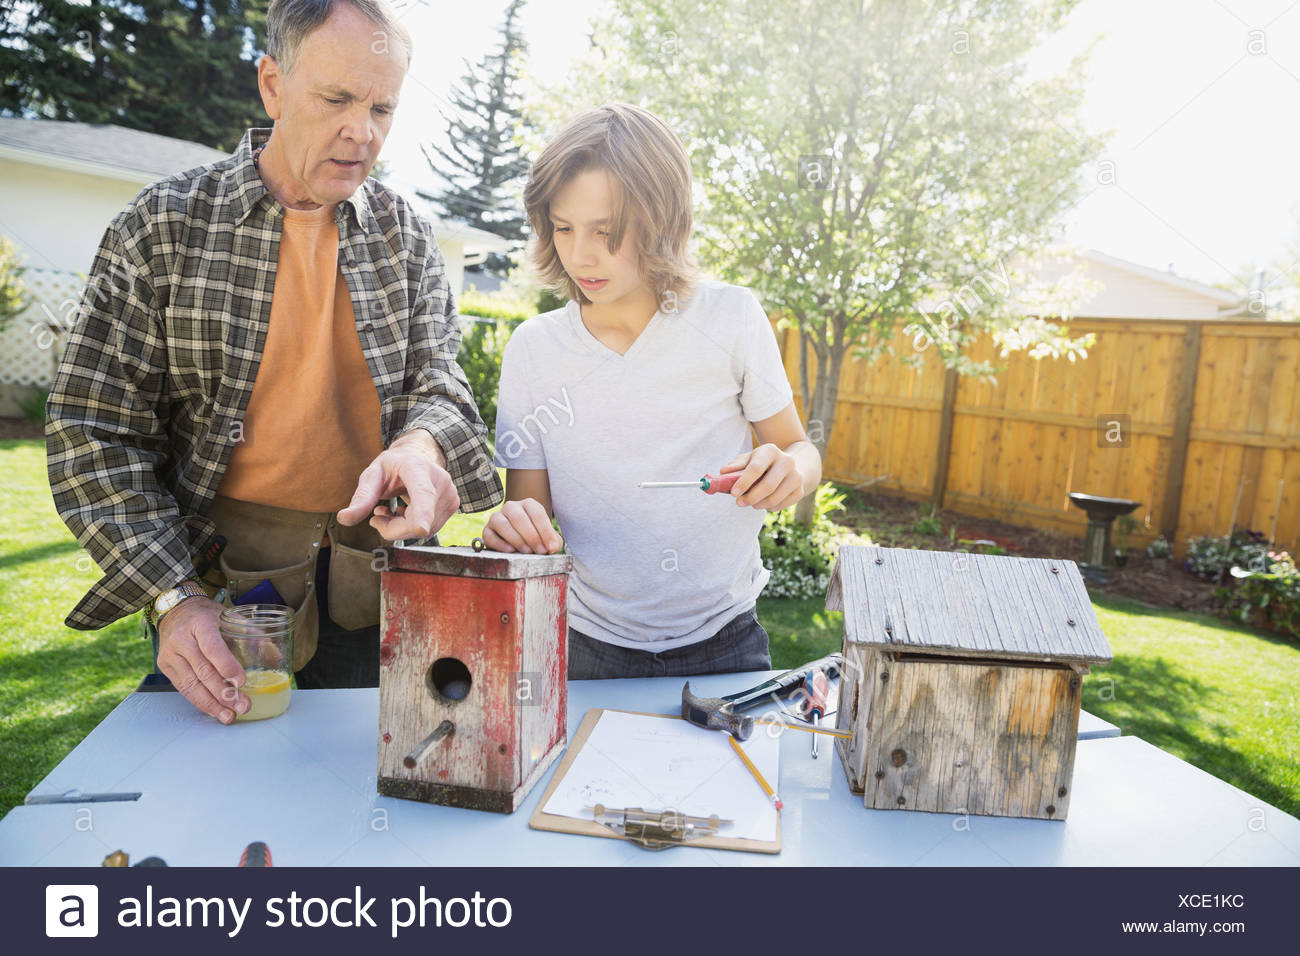 Grandfather and grandson making birdhouses in backyard - Stock Image